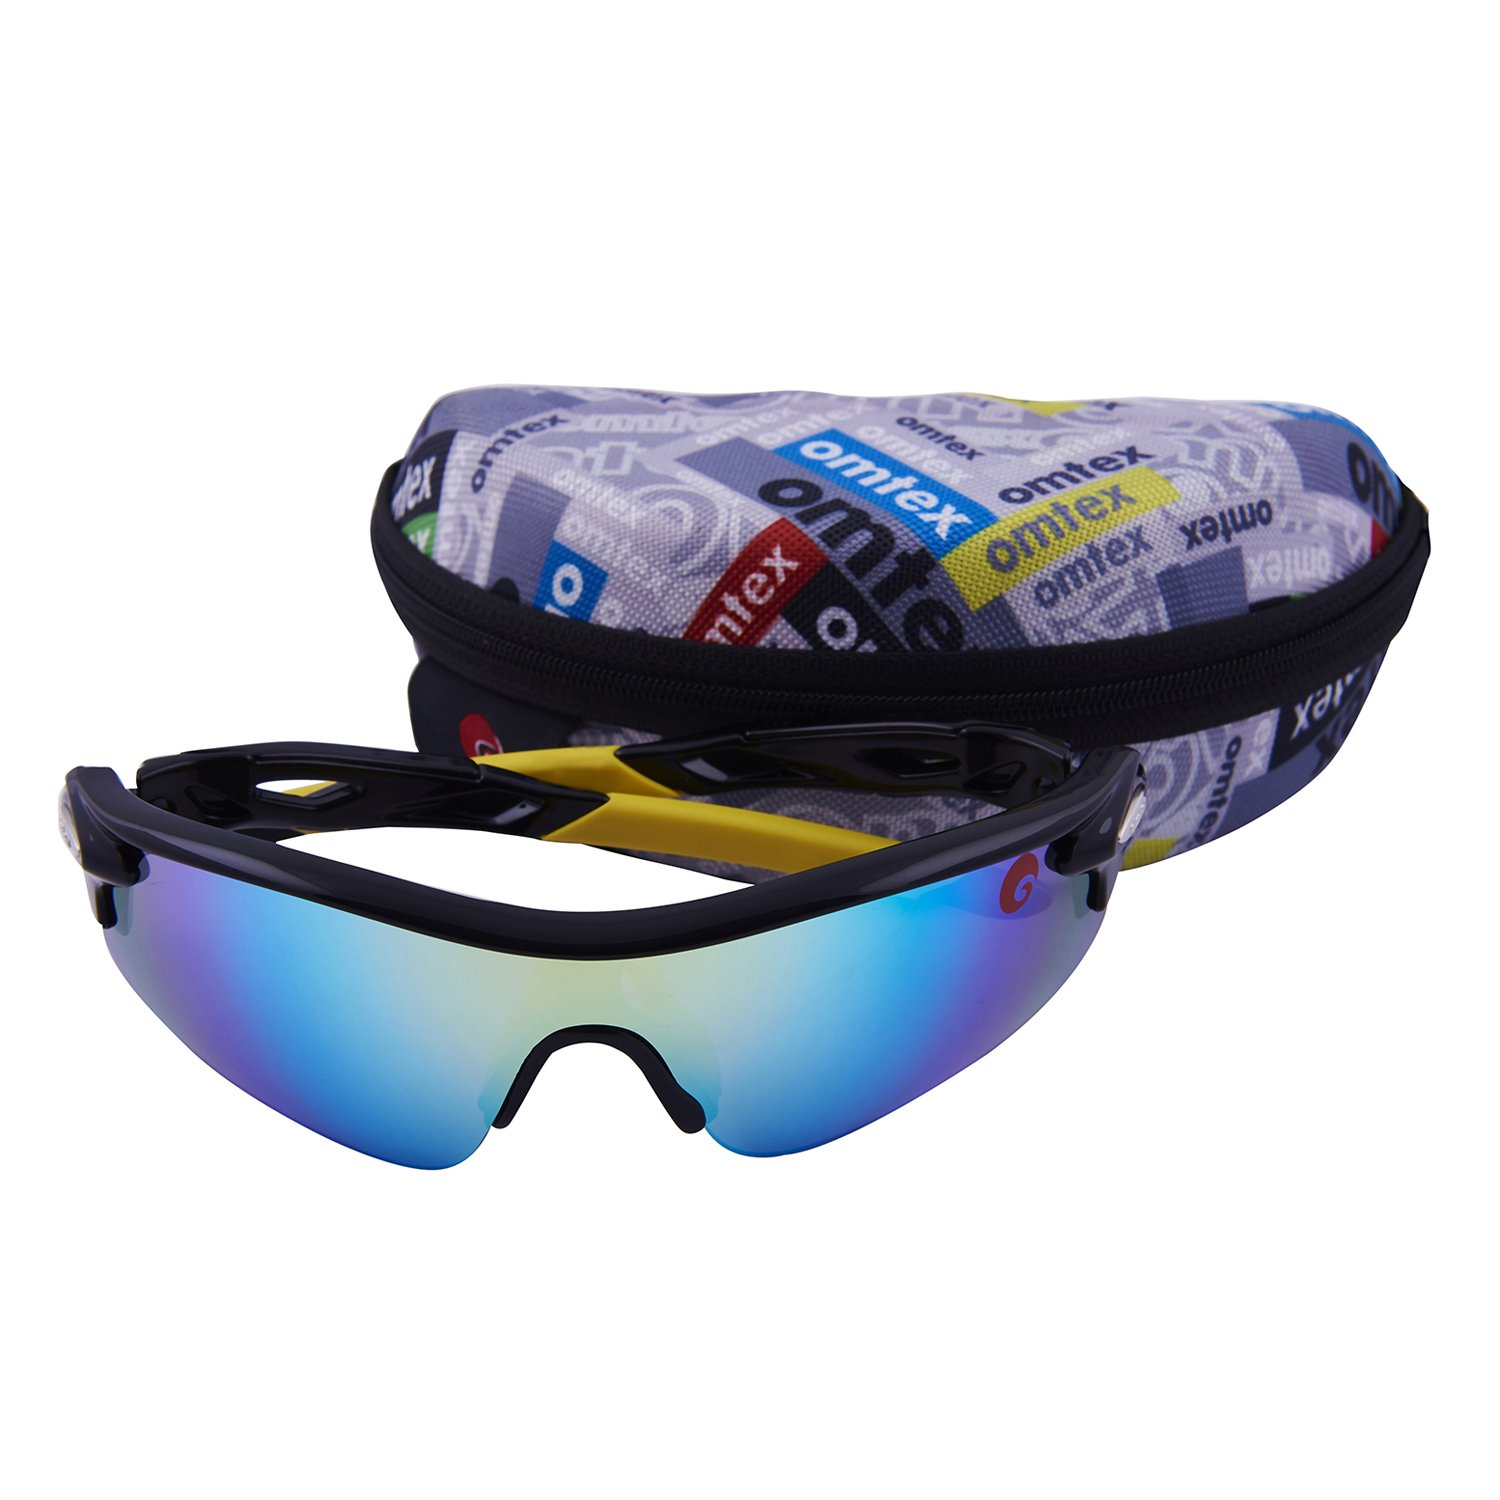 163ddd053e Omtex Sports Sunglasses (Flash Yellow)  Amazon.in  Clothing   Accessories